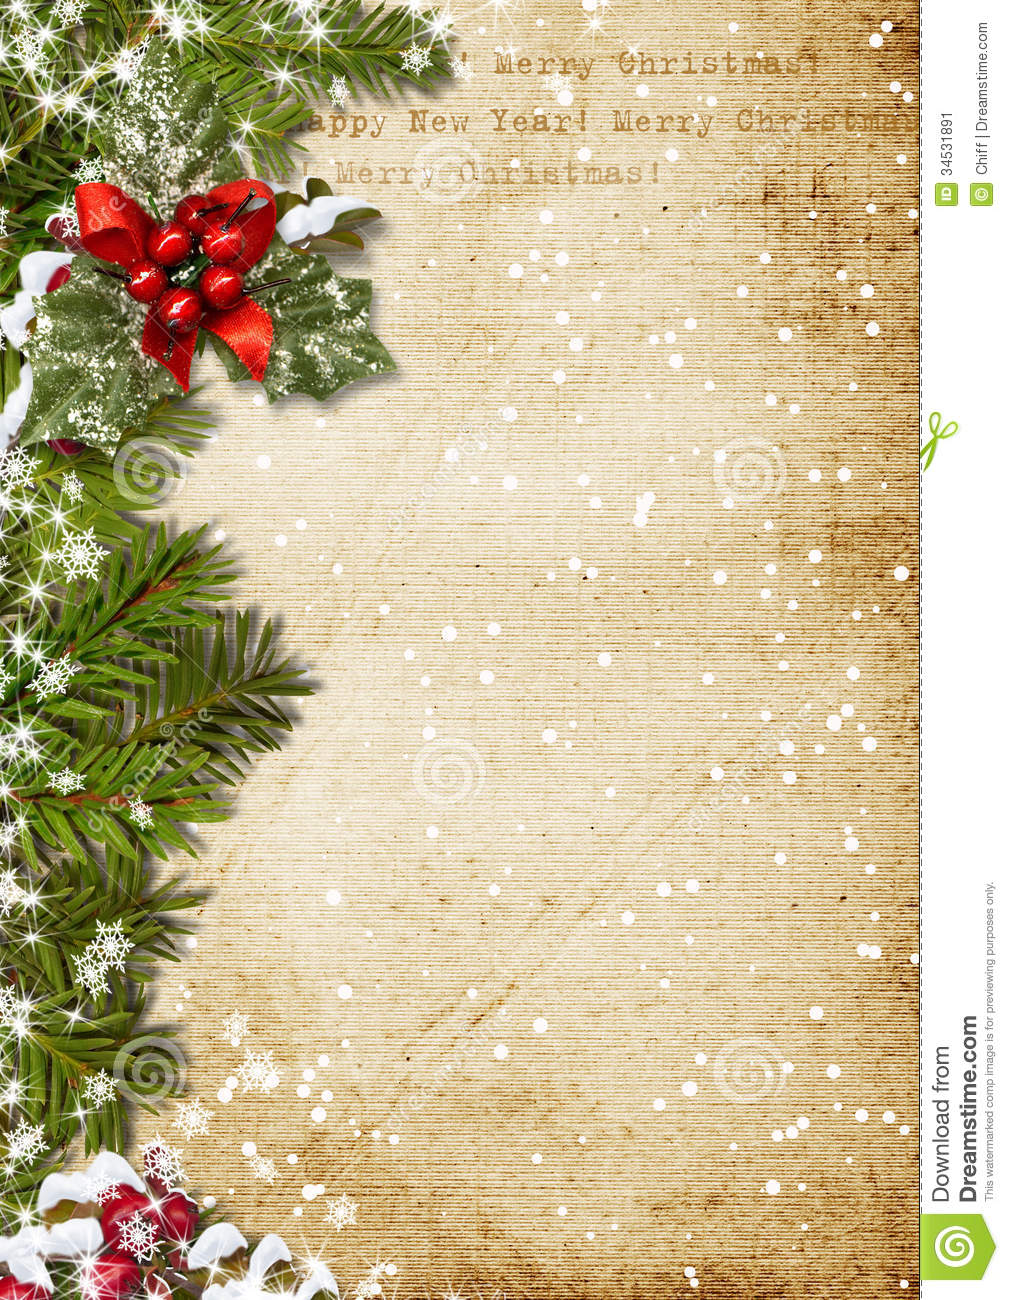 Vintage Christmas Background Stock Image - Image: 34531891